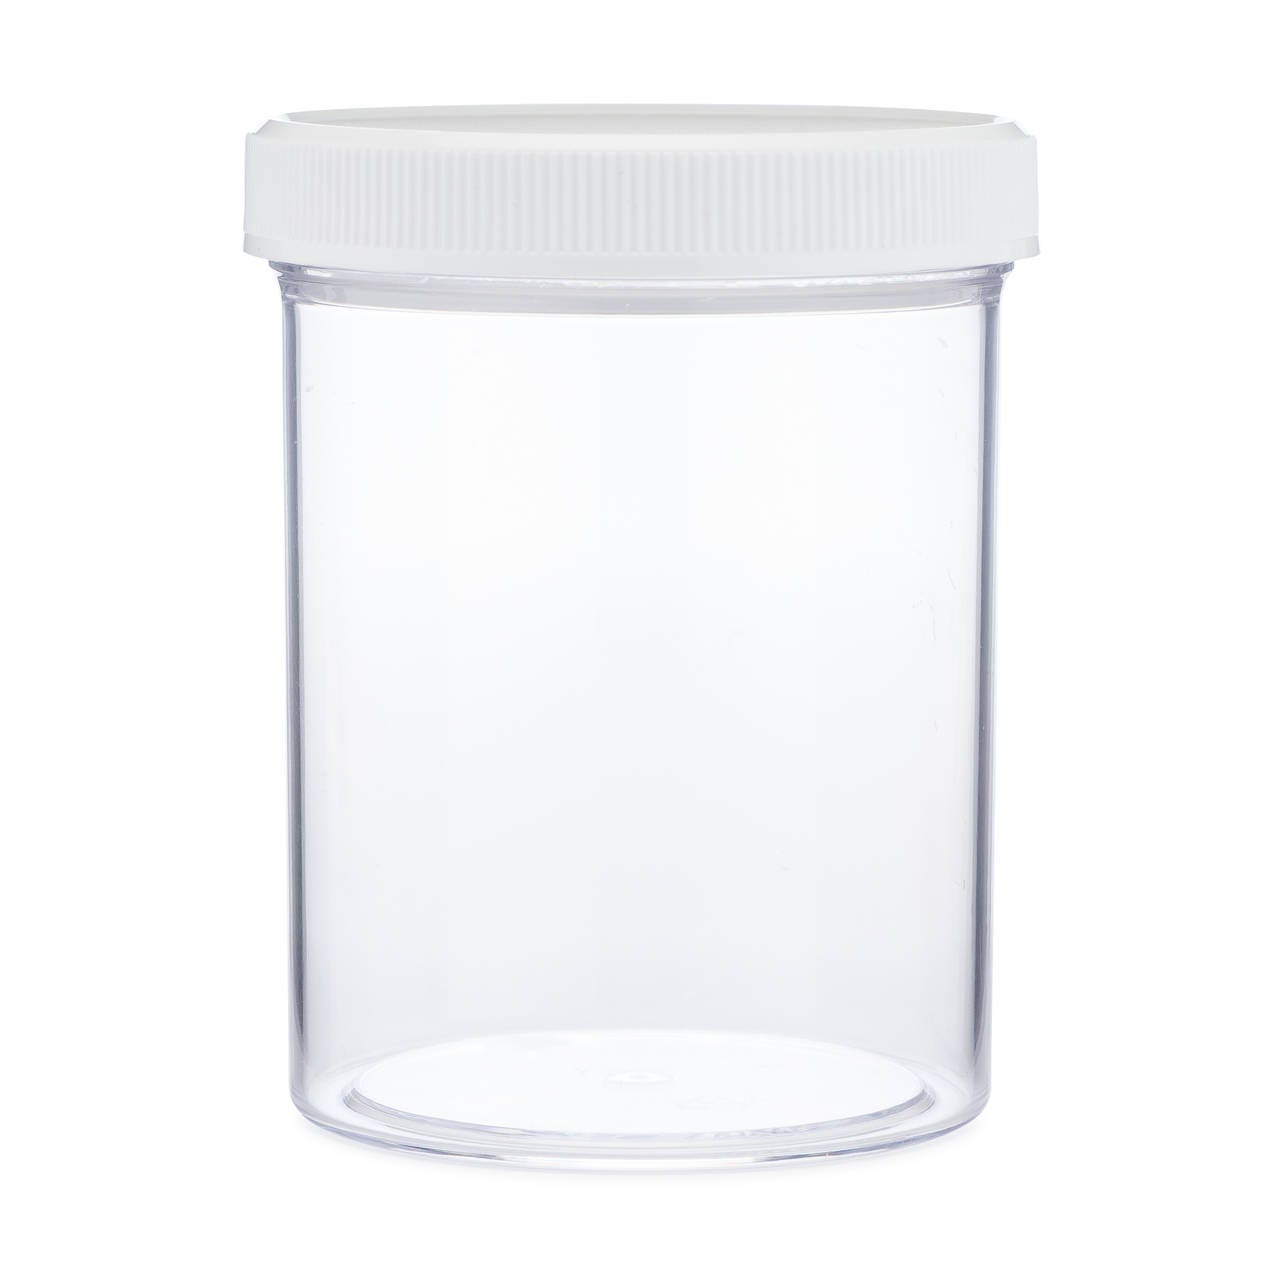 6b6e84ff702a 4 oz clear slime jars containers party favors gifts (slime is not included)